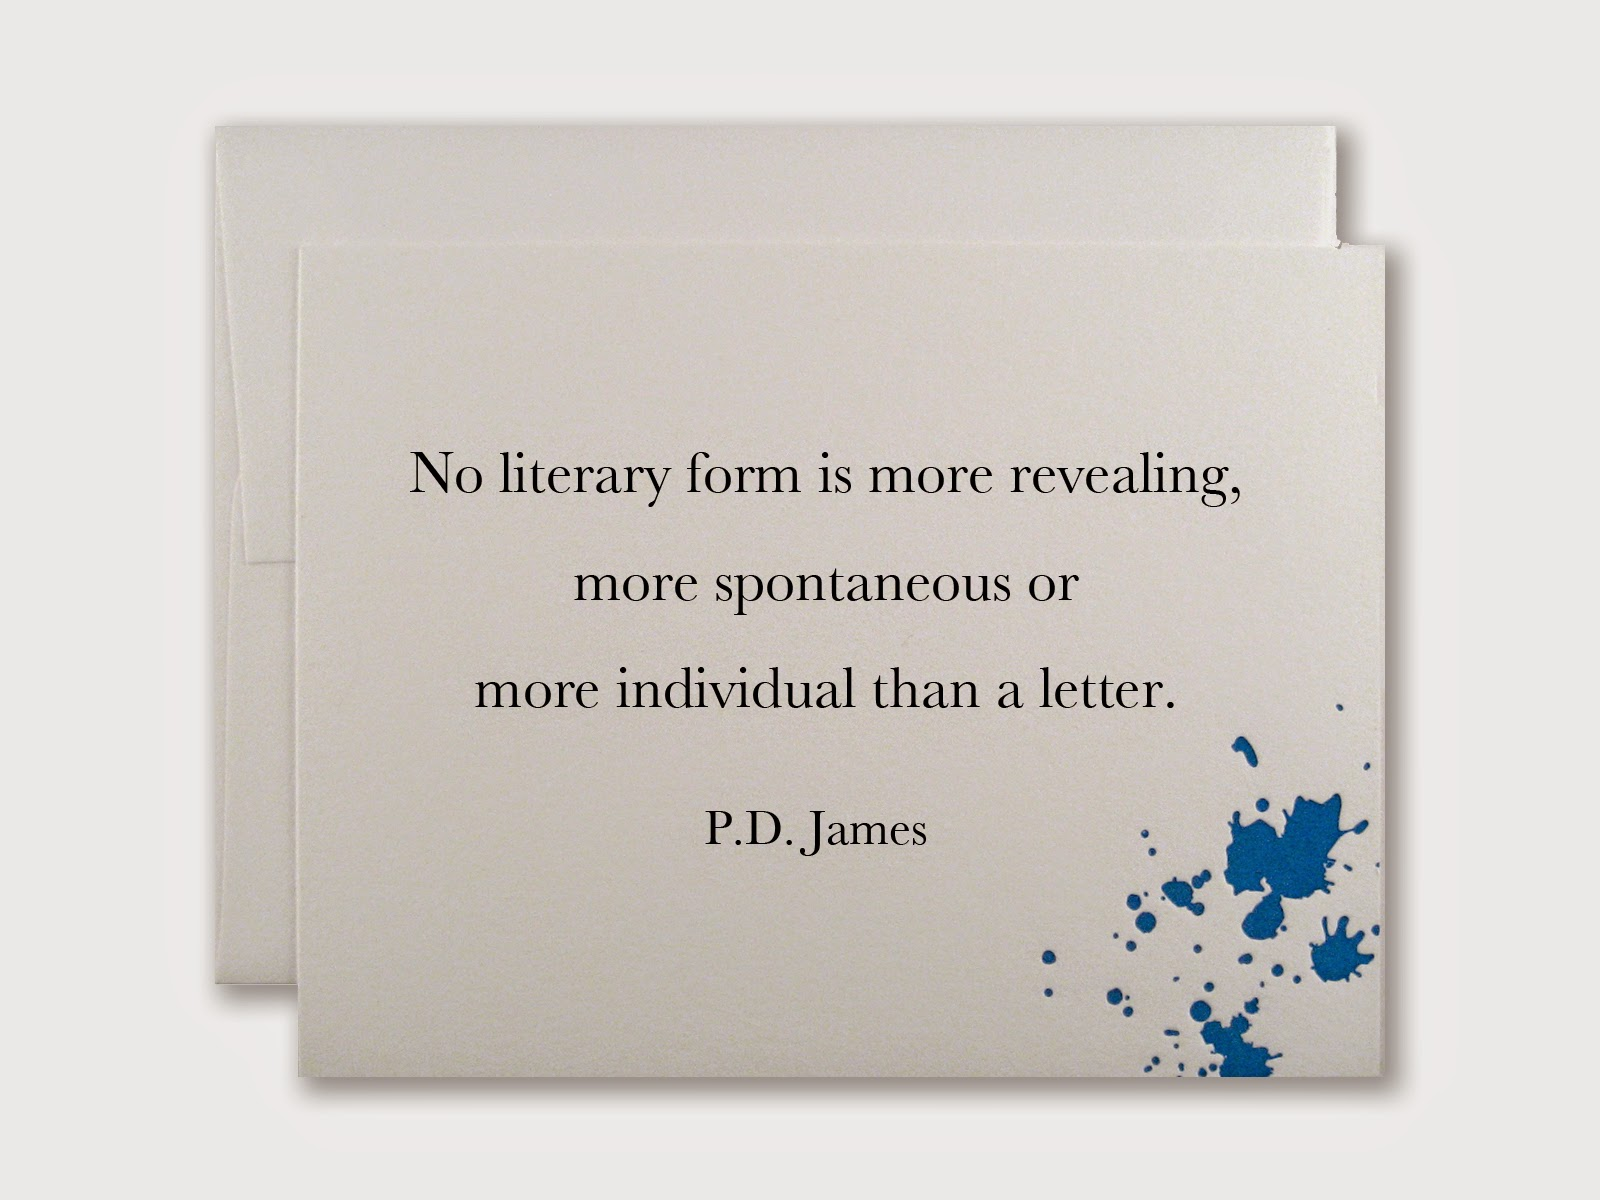 No literary form is more revealing, more spontaneous or more individual than a letter. - P.D. James